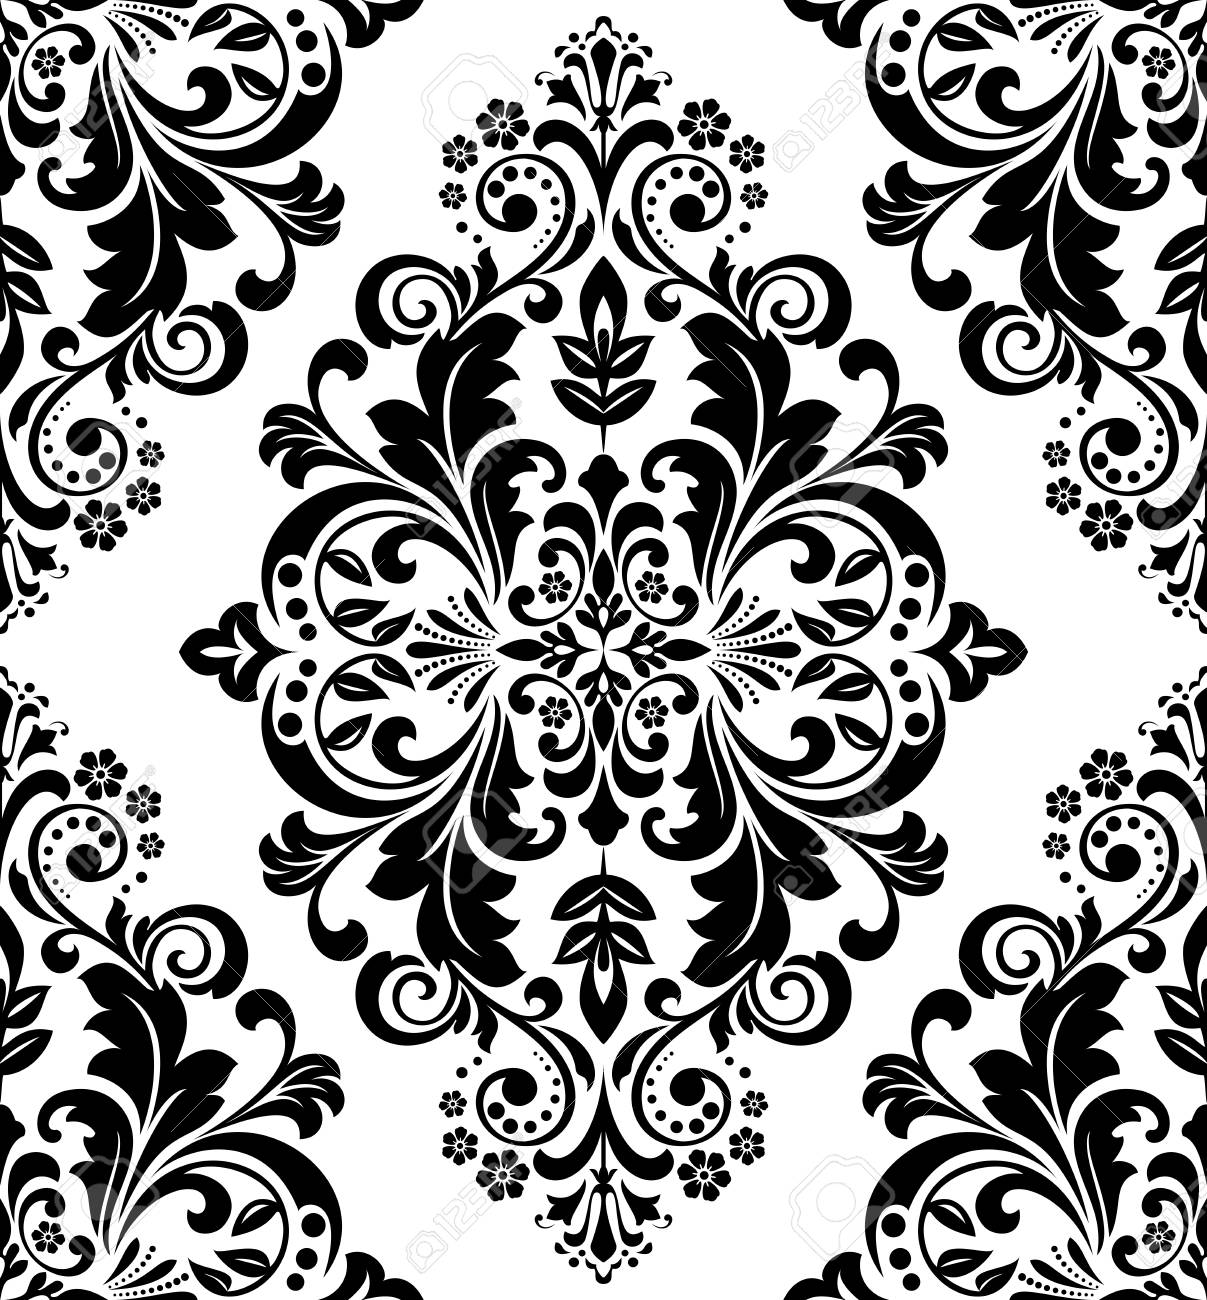 Damask Seamless Floral Pattern Royal Wallpaper Black Flowers